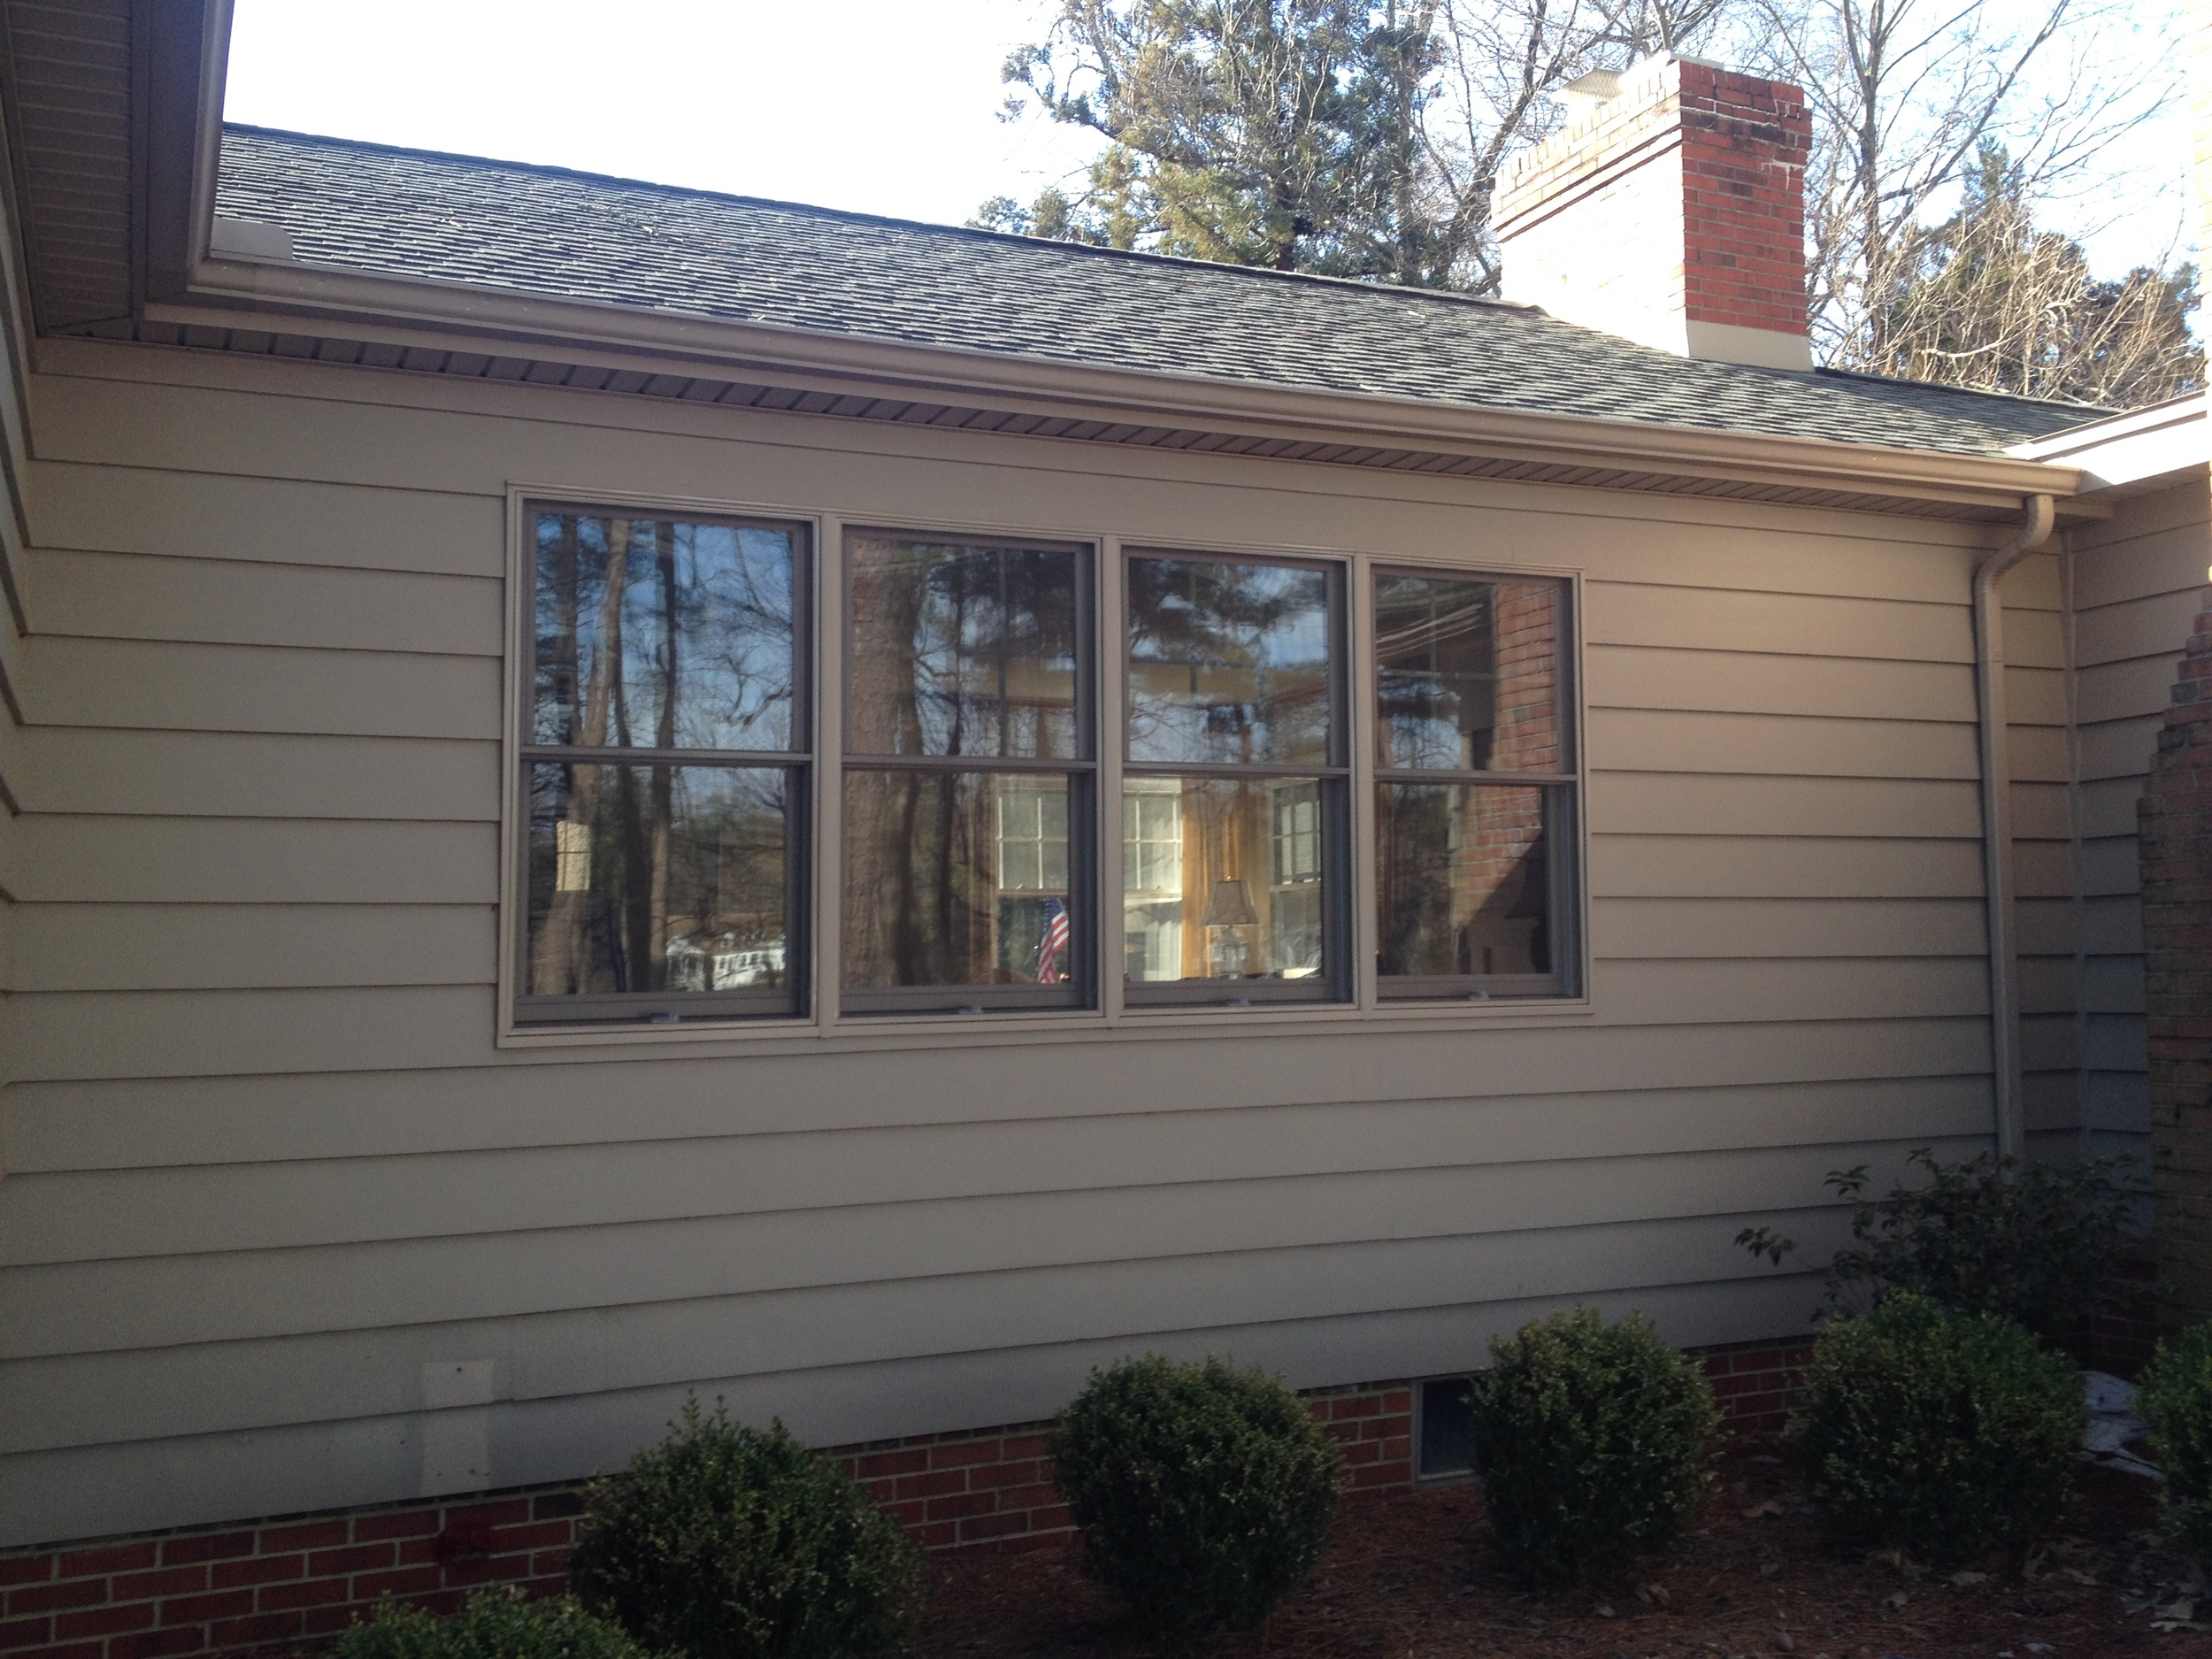 A new set of Andersen windows was installed